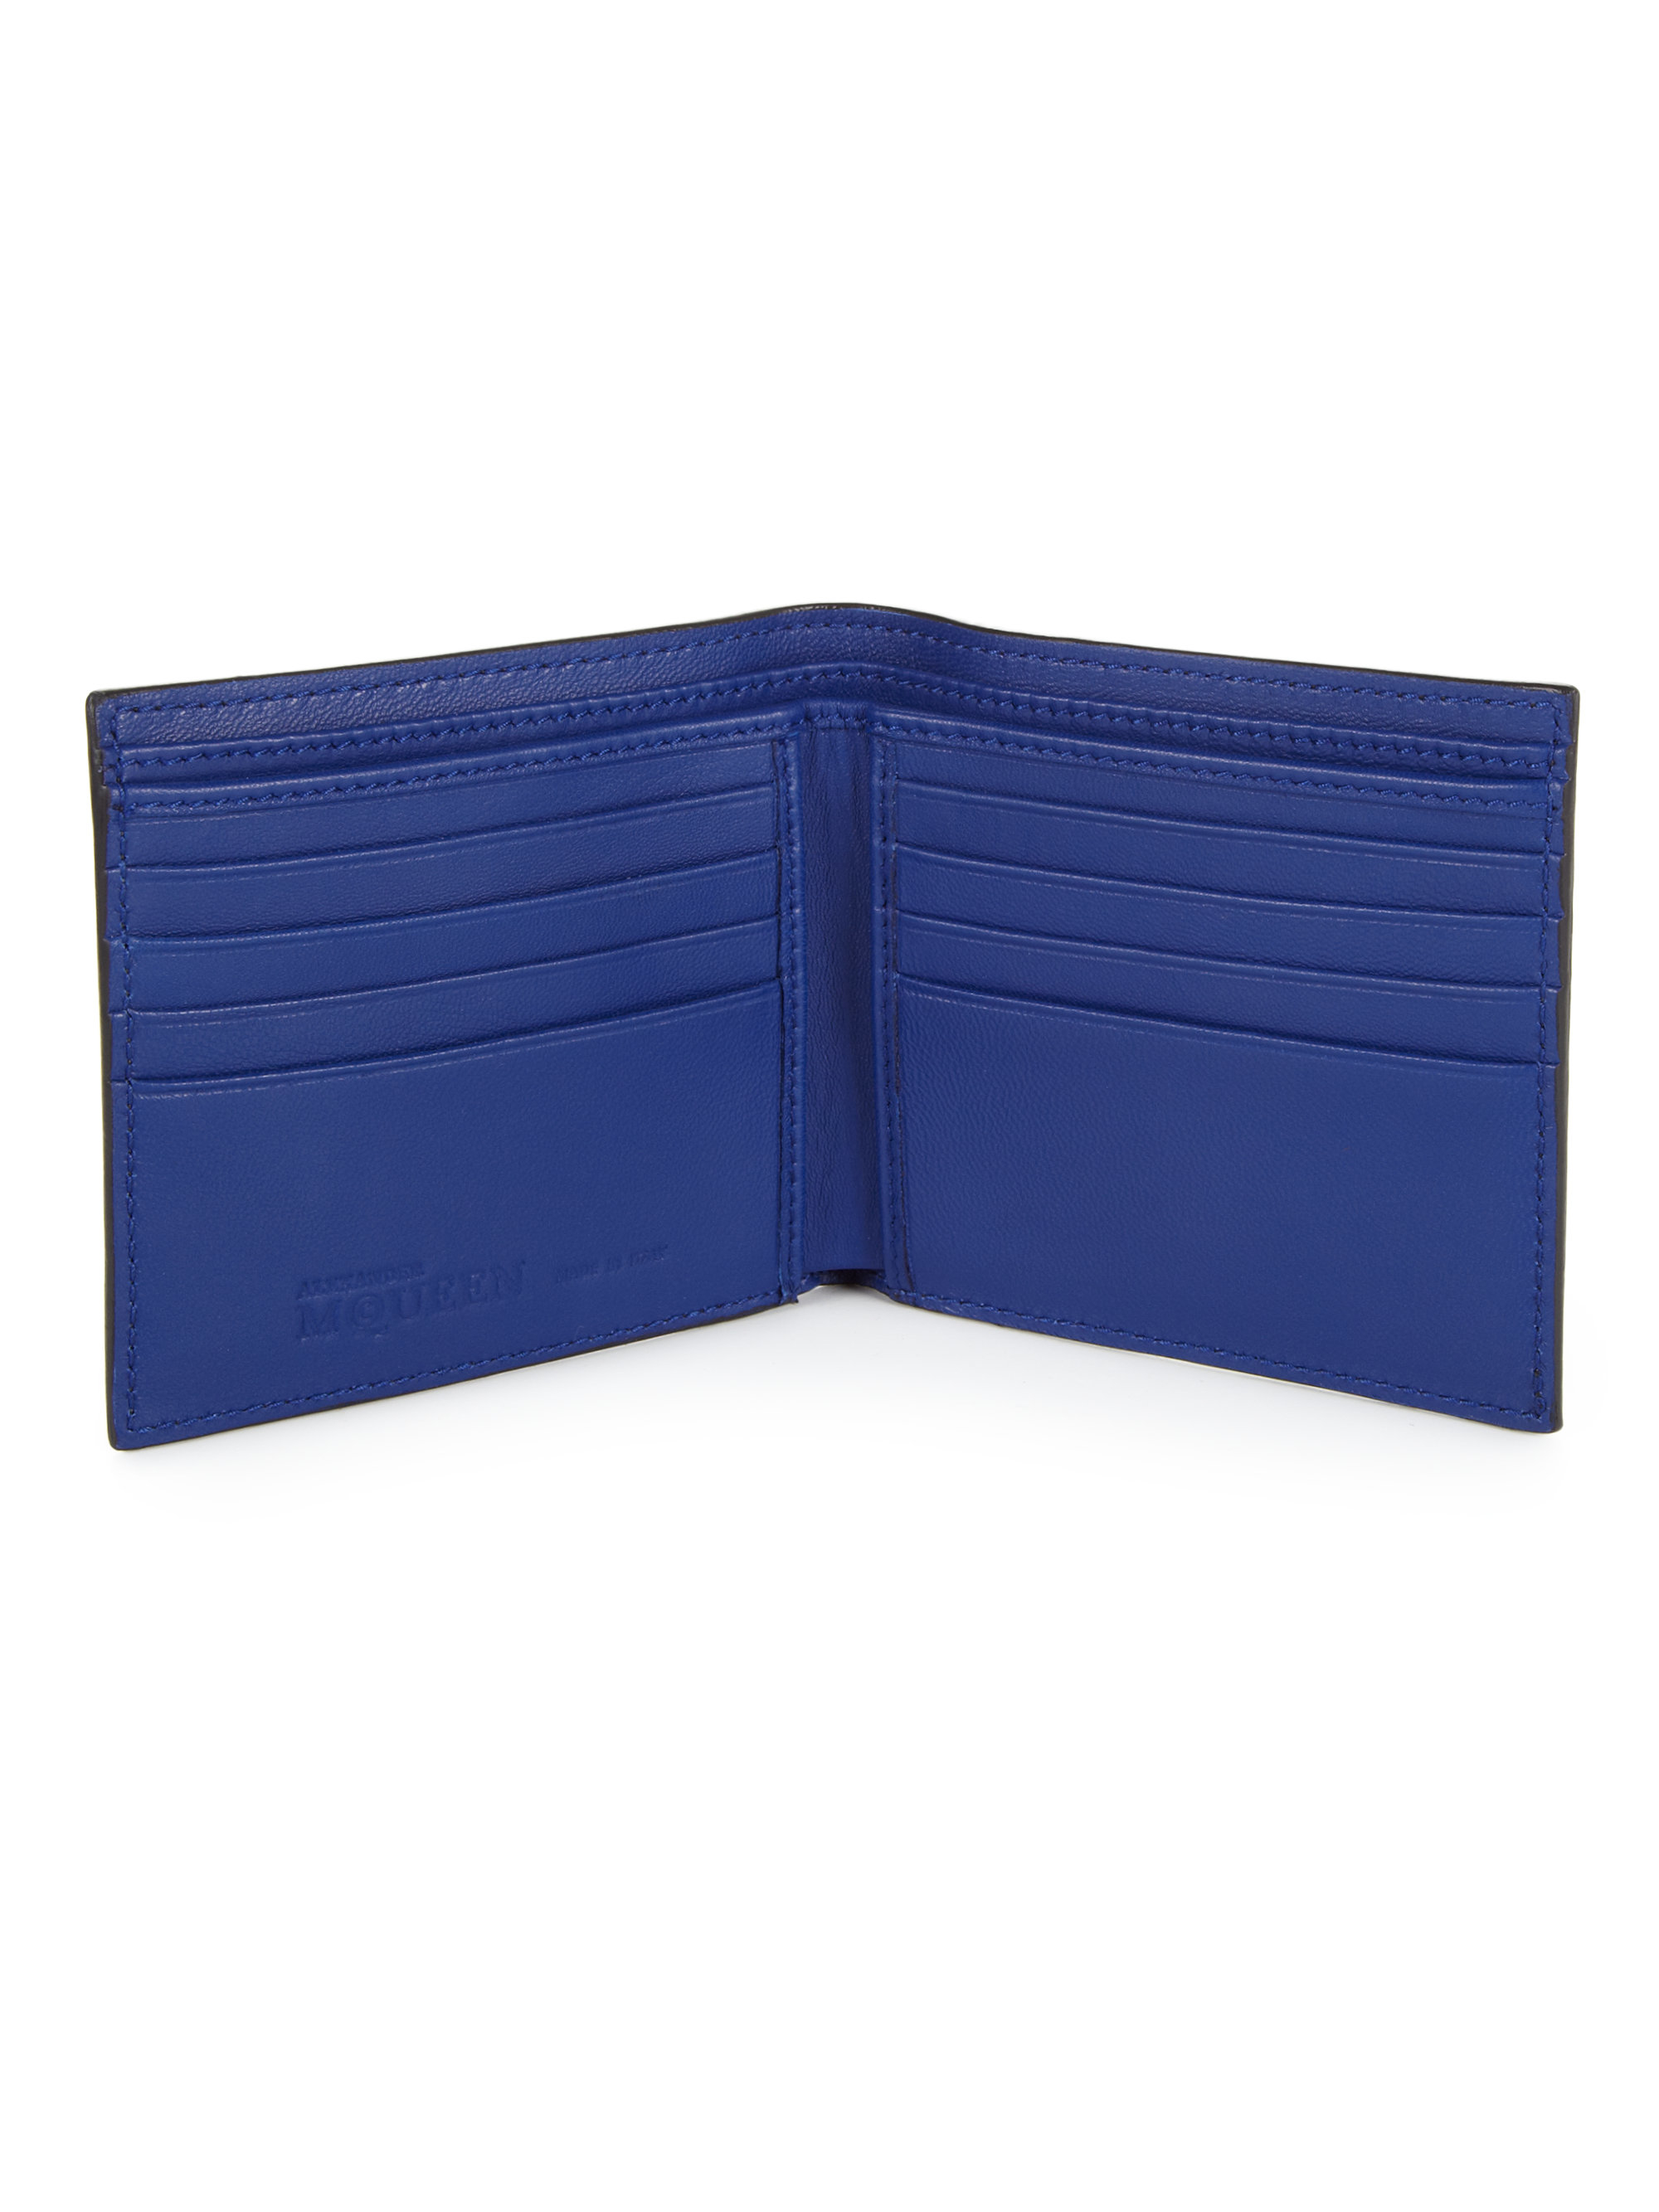 Lyst Alexander Mcqueen Ombre Leather Billfold Wallet In